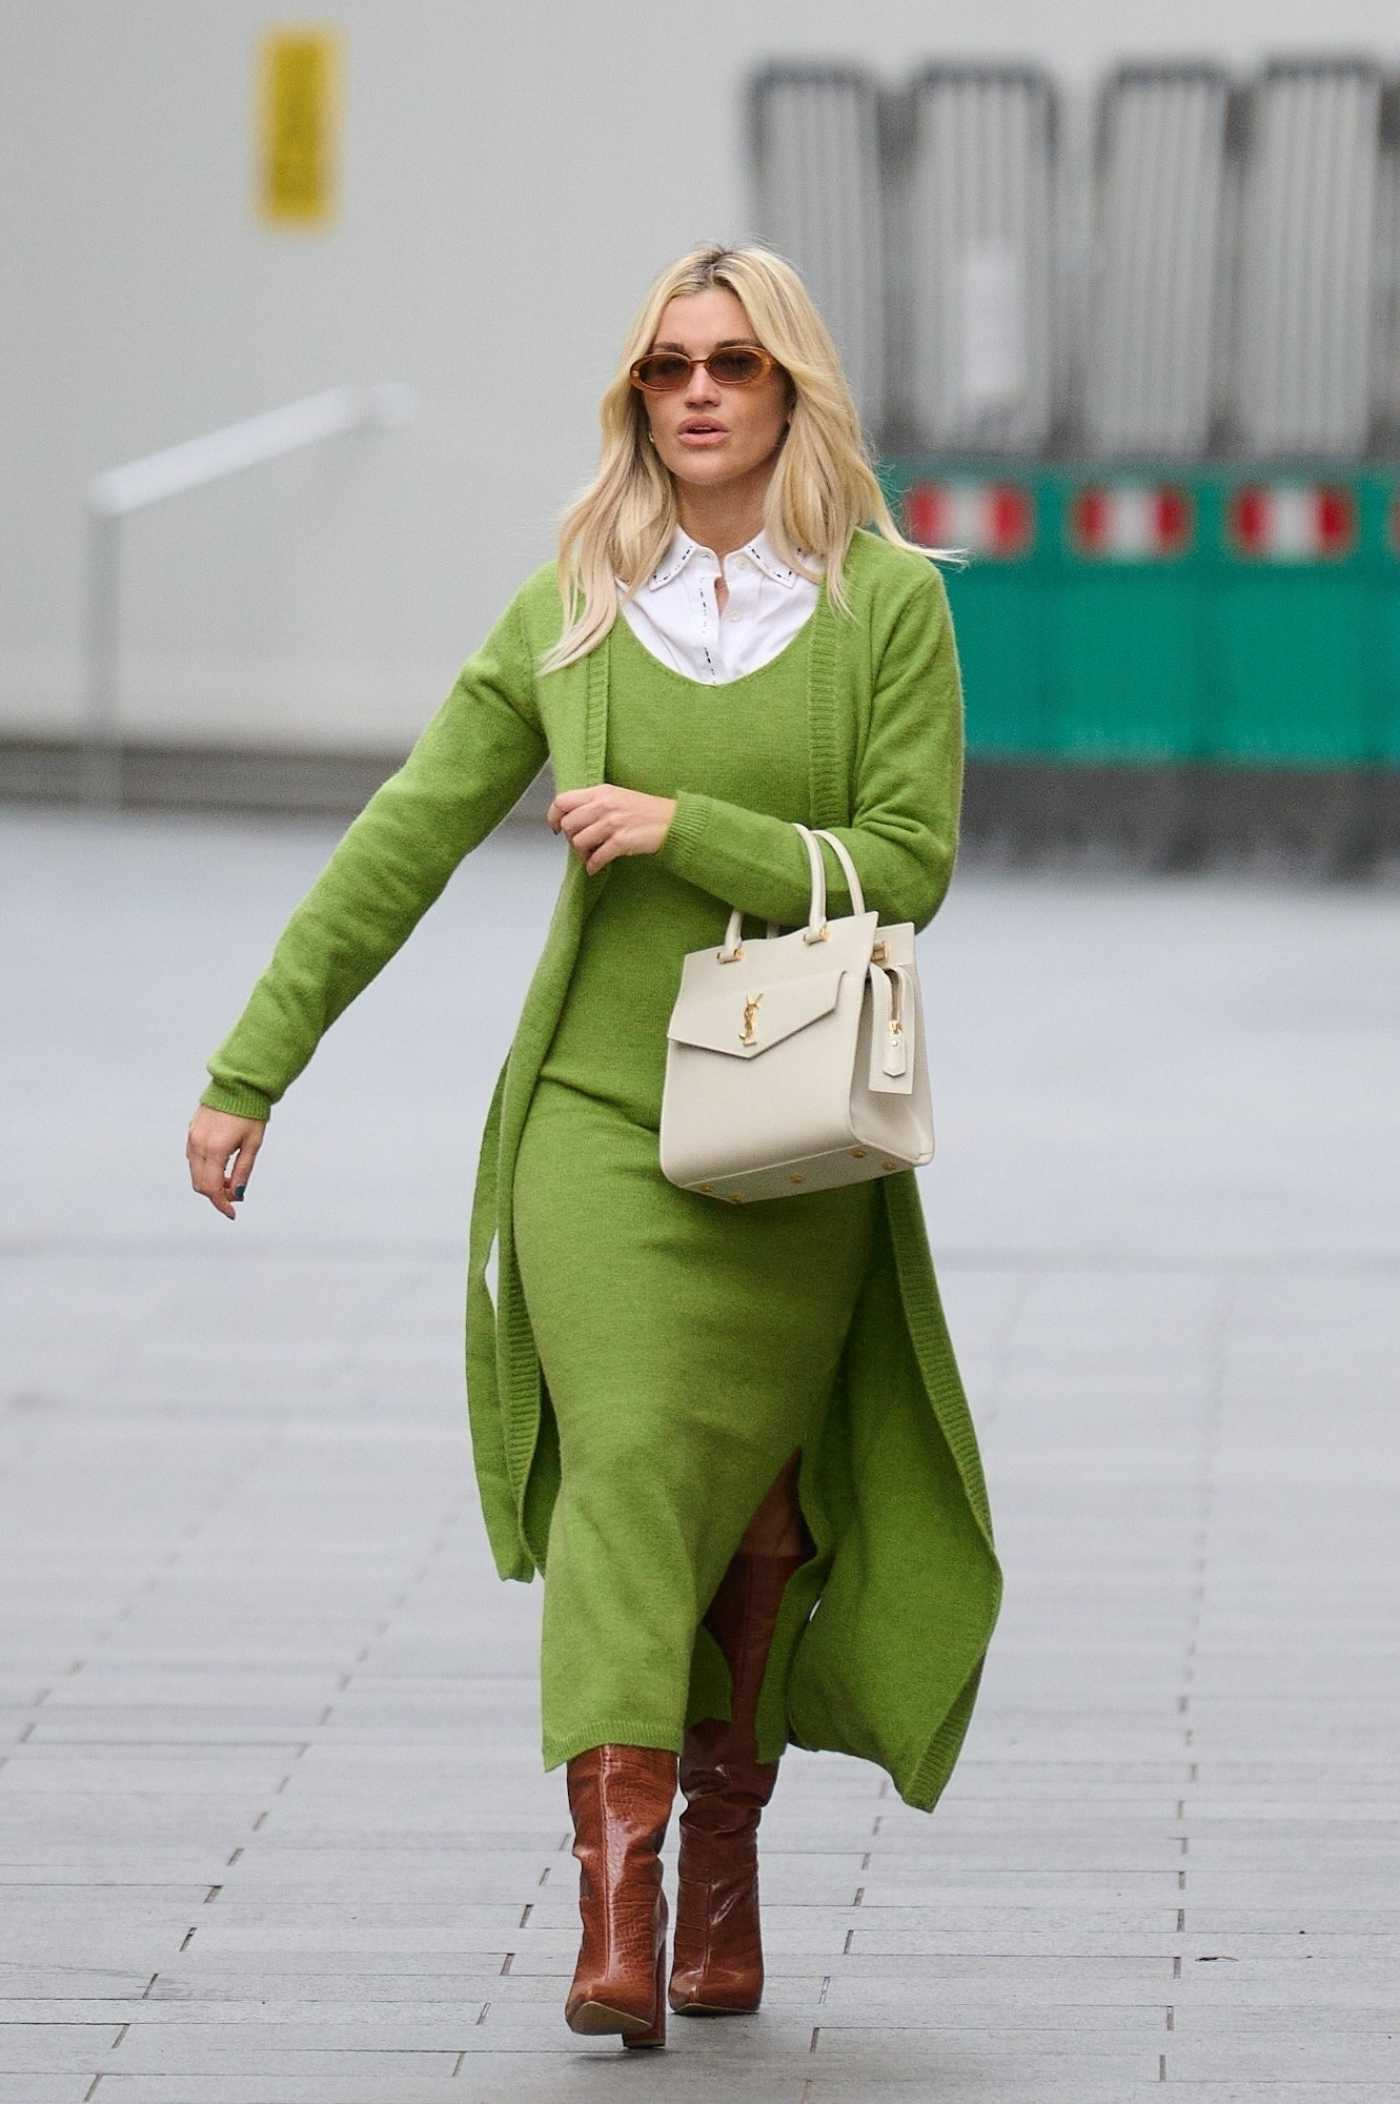 Ashley Roberts in a Neon Green Outfit Leaves the Global Radio Studios in London 01/18/2021